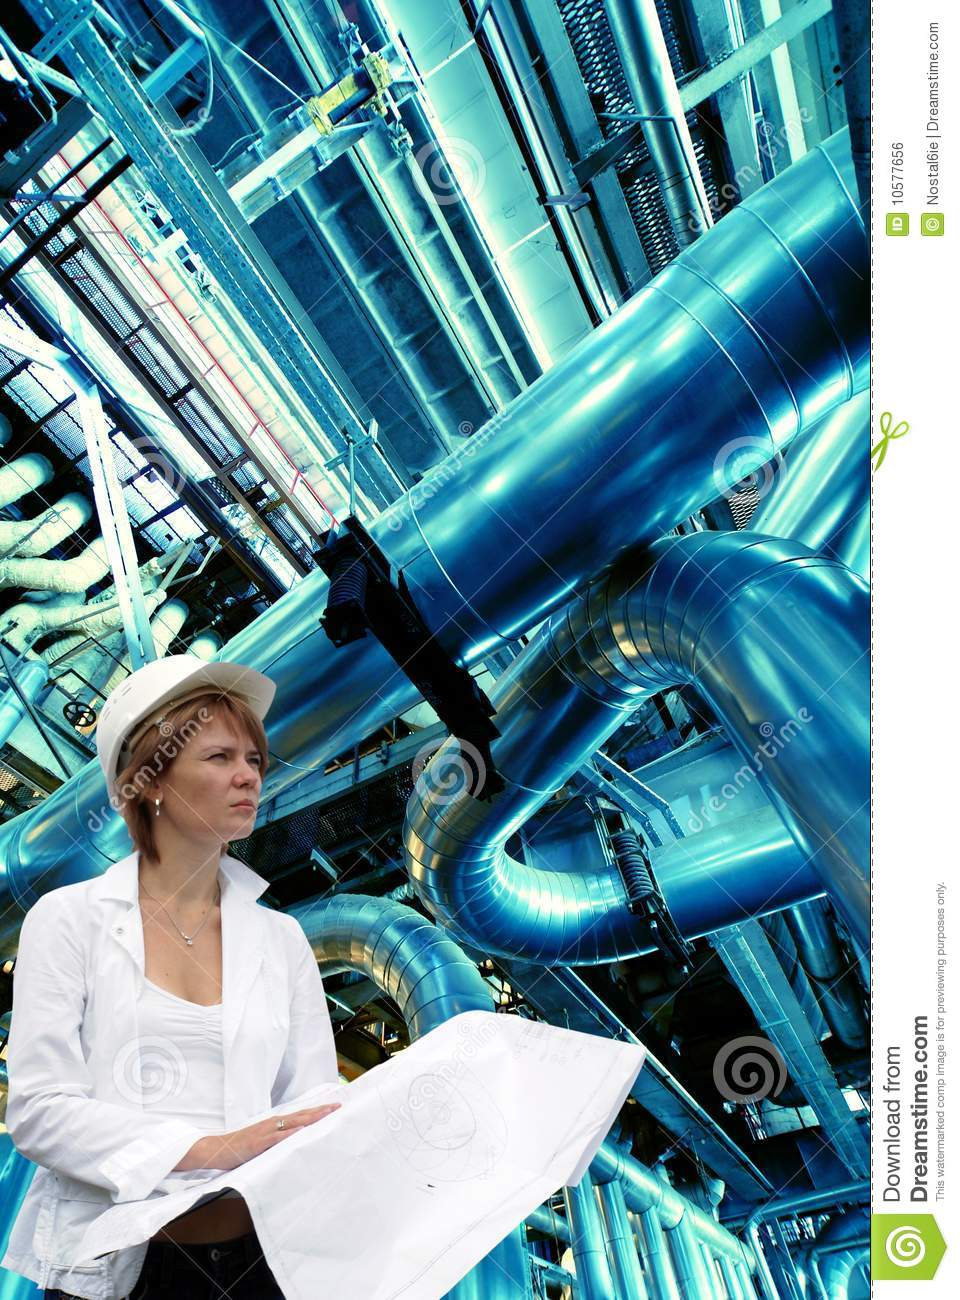 Woman engineer against pipes